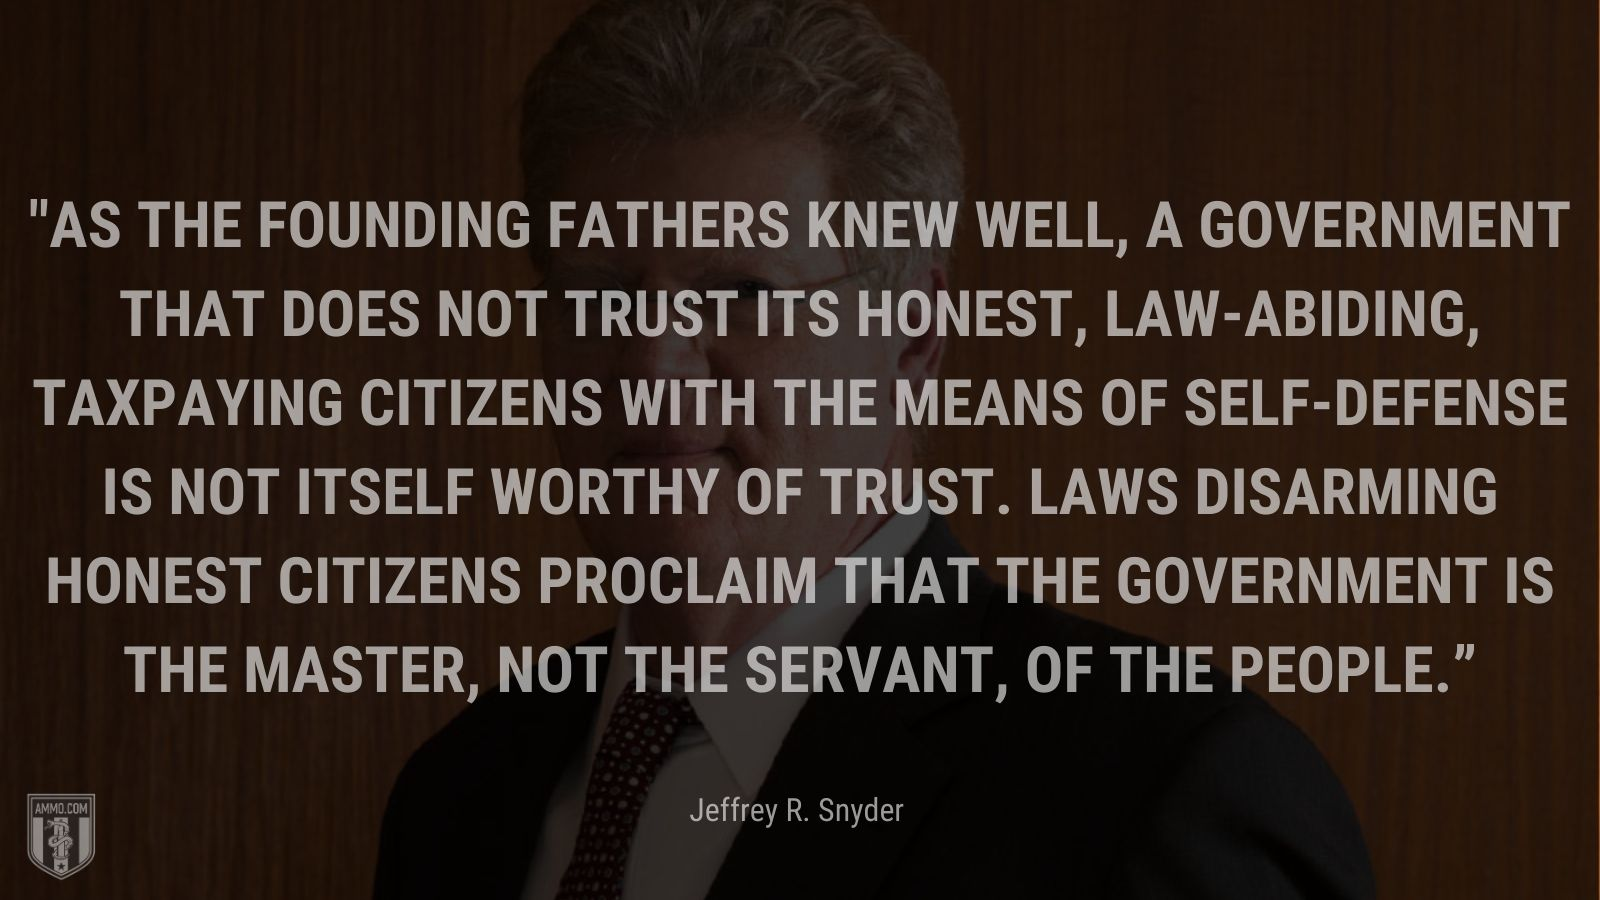 """""""As the Founding Fathers knew well, a government that does not trust its honest, law-abiding, taxpaying citizens with the means of self-defense is not itself worthy of trust. Laws disarming honest citizens proclaim that the government is the master, not the servant, of the people."""" - Jeffrey R. Snyder"""